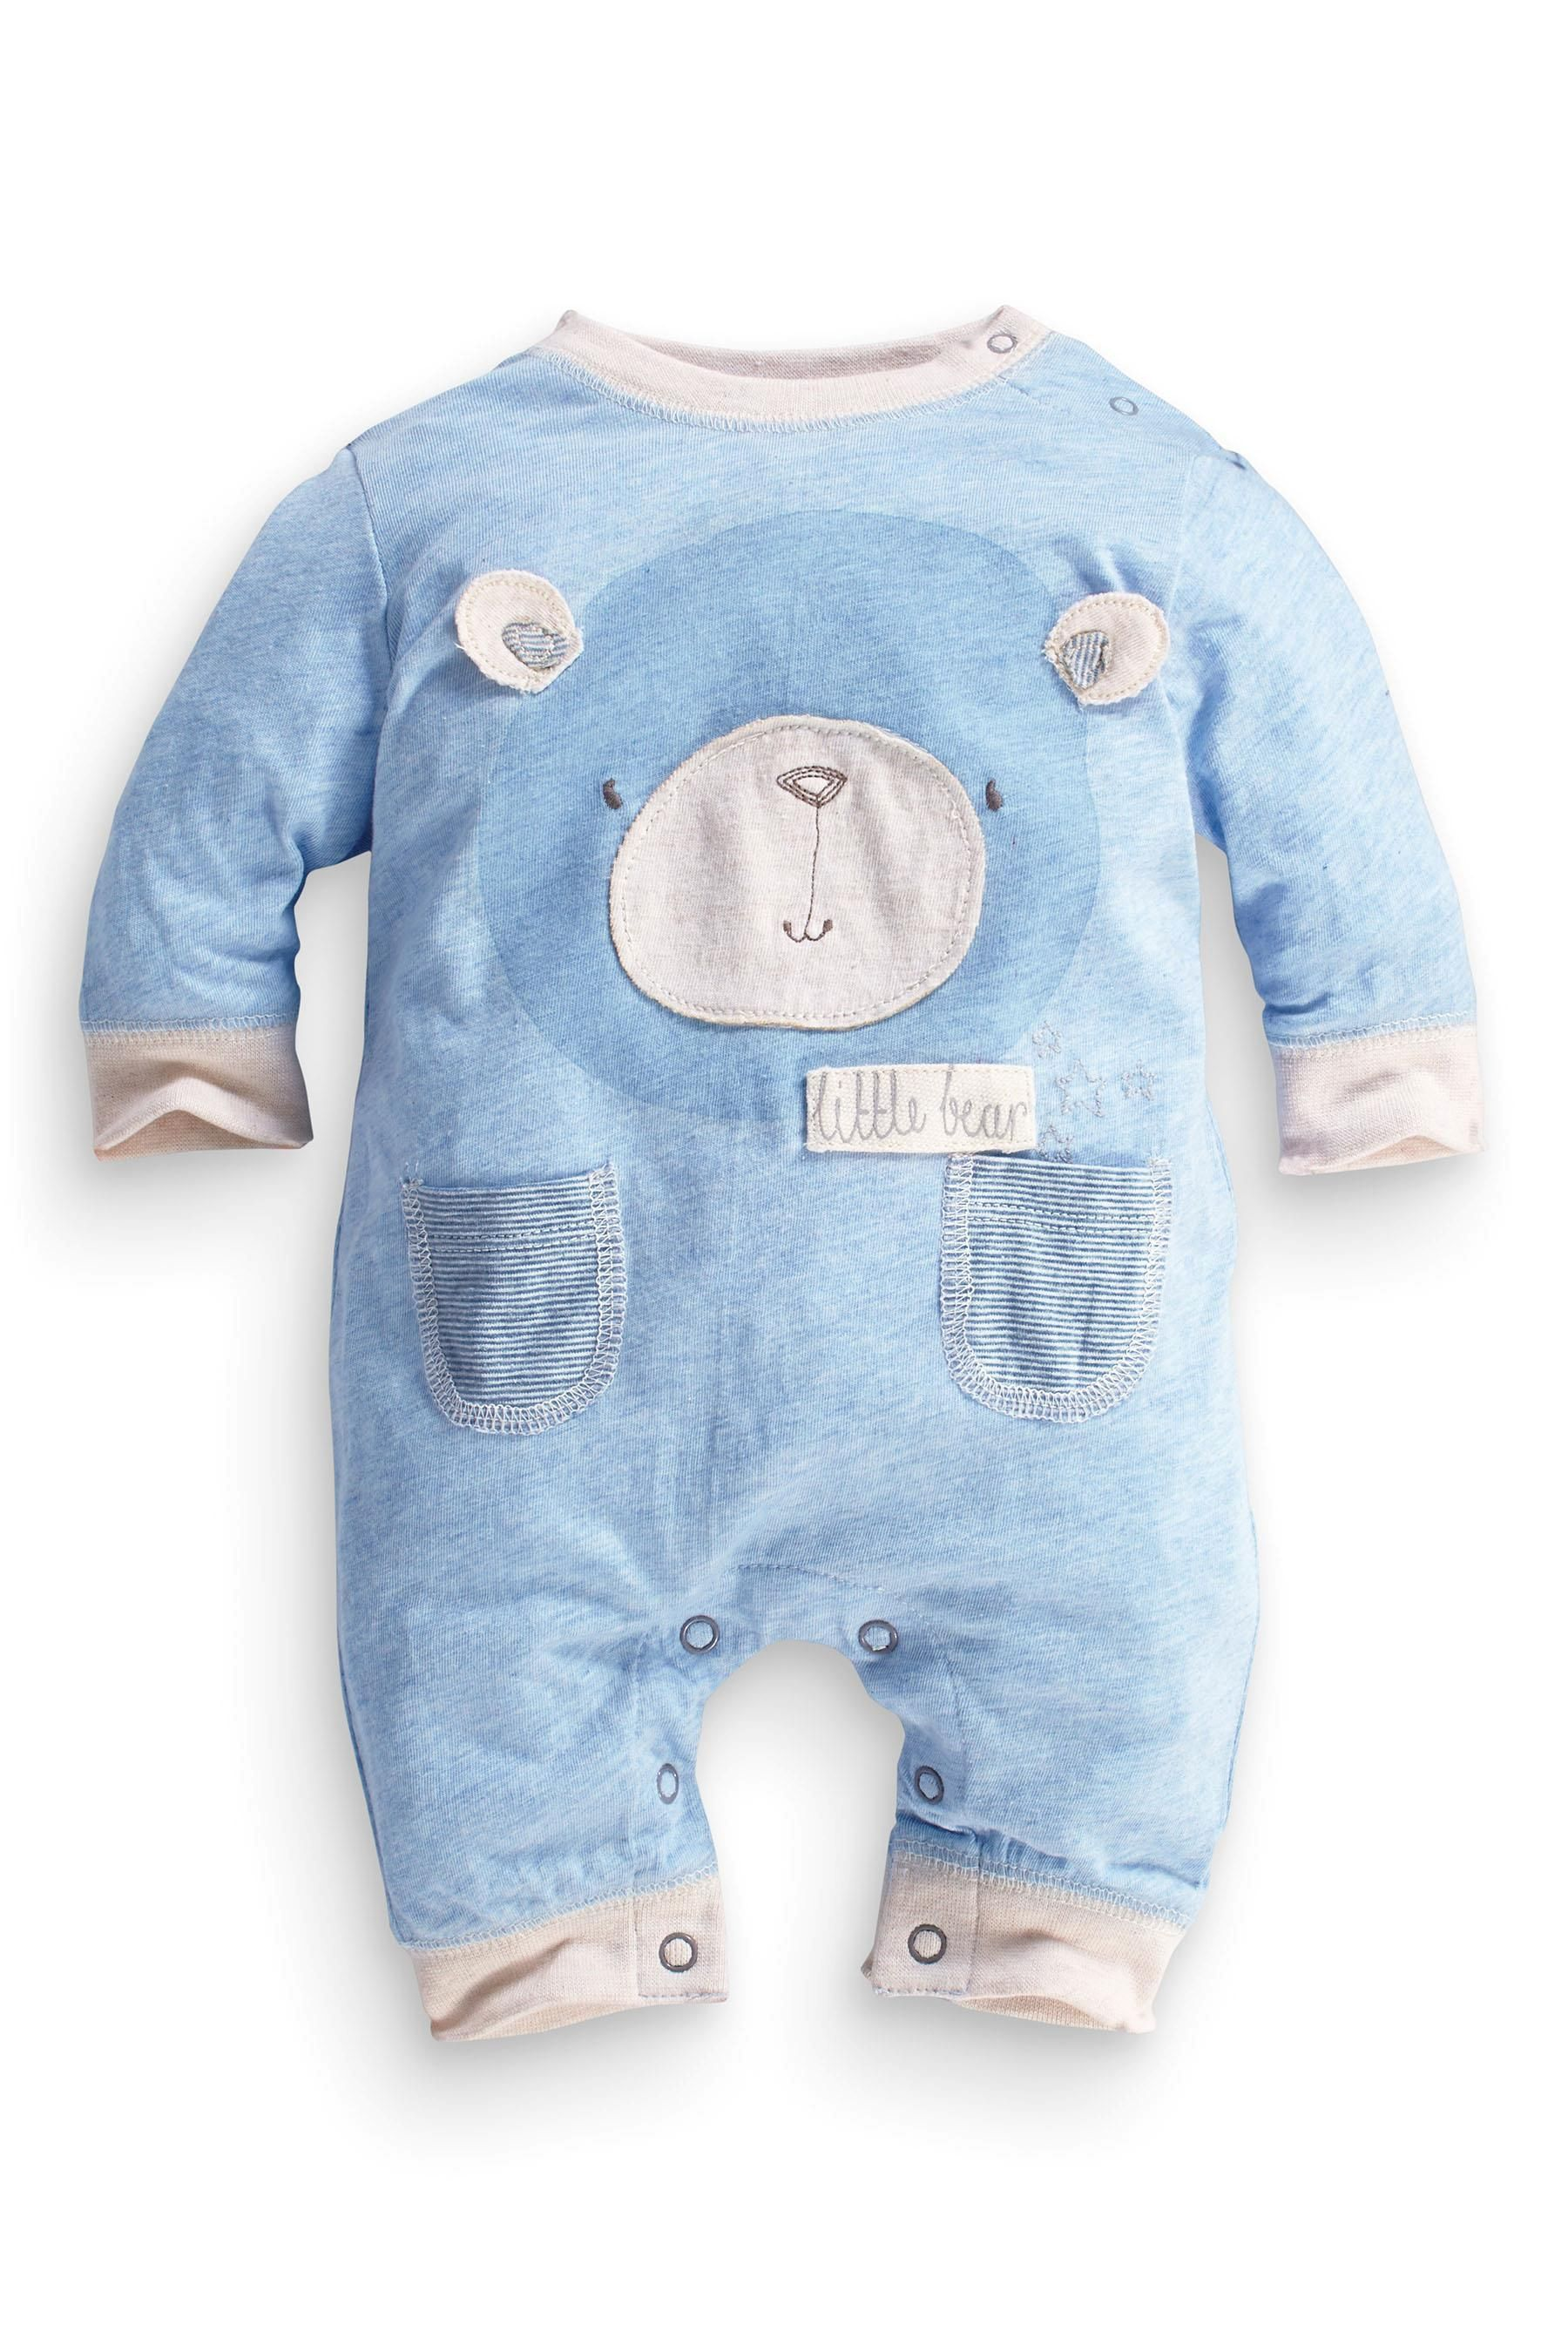 Buy Blue Bear Romper 0 18mths from the Next UK online shop